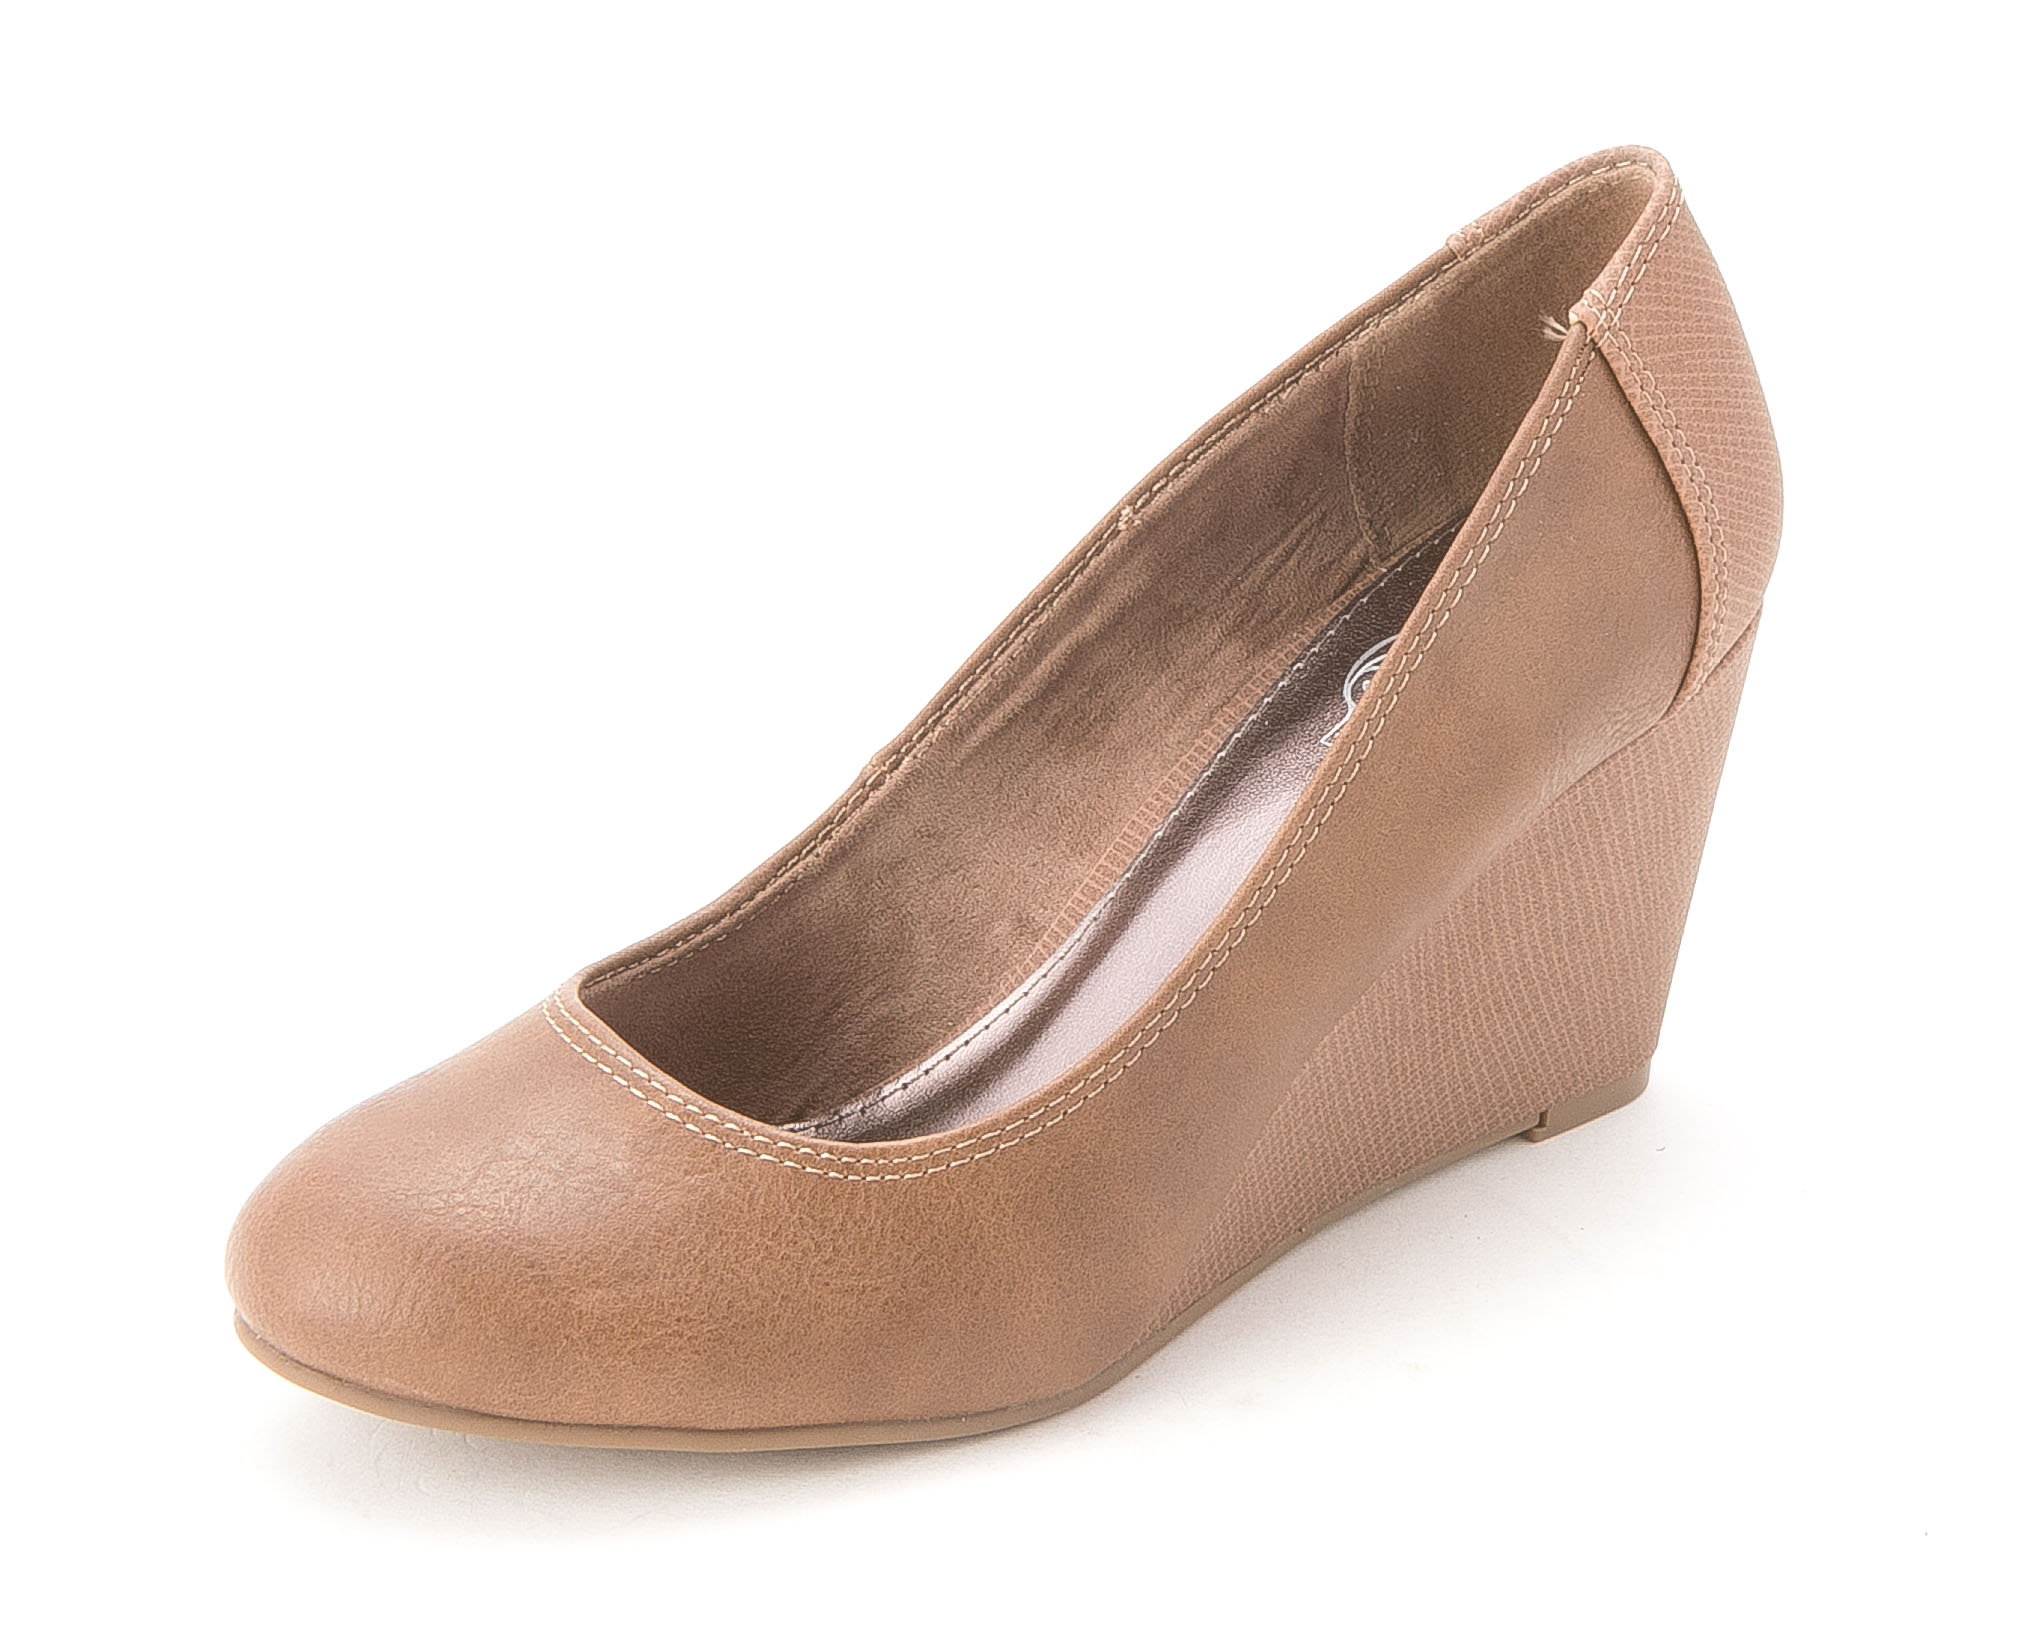 Unlisted Shoes Heels